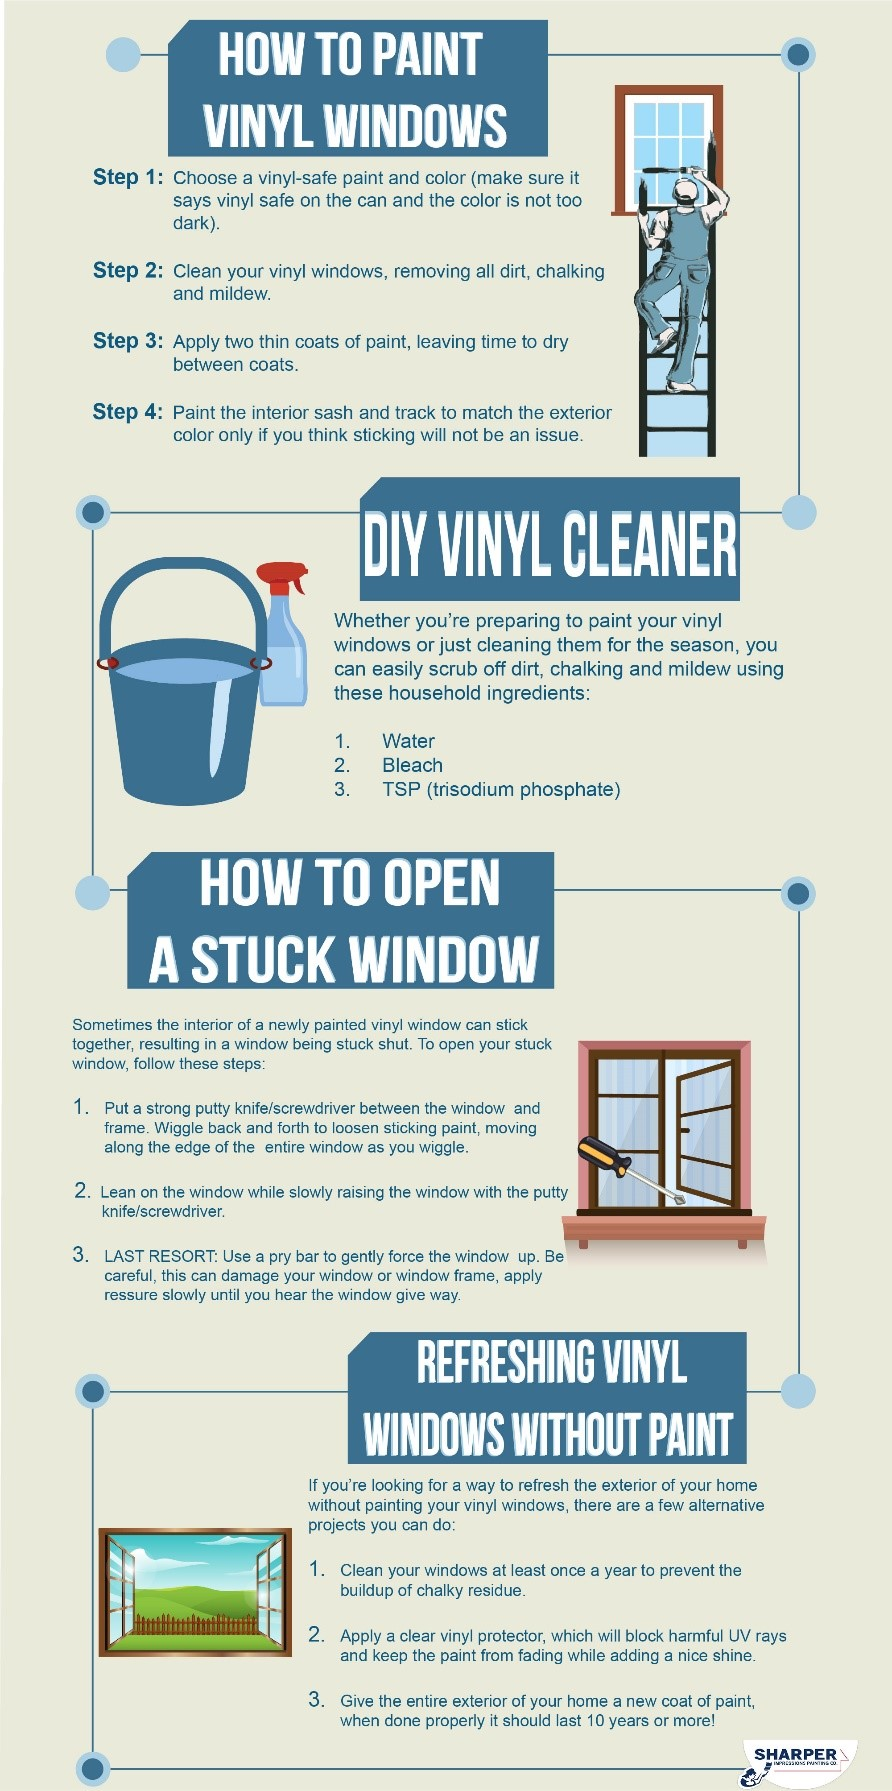 How To Paint Vinyl Windows Sharper Impressions Painting